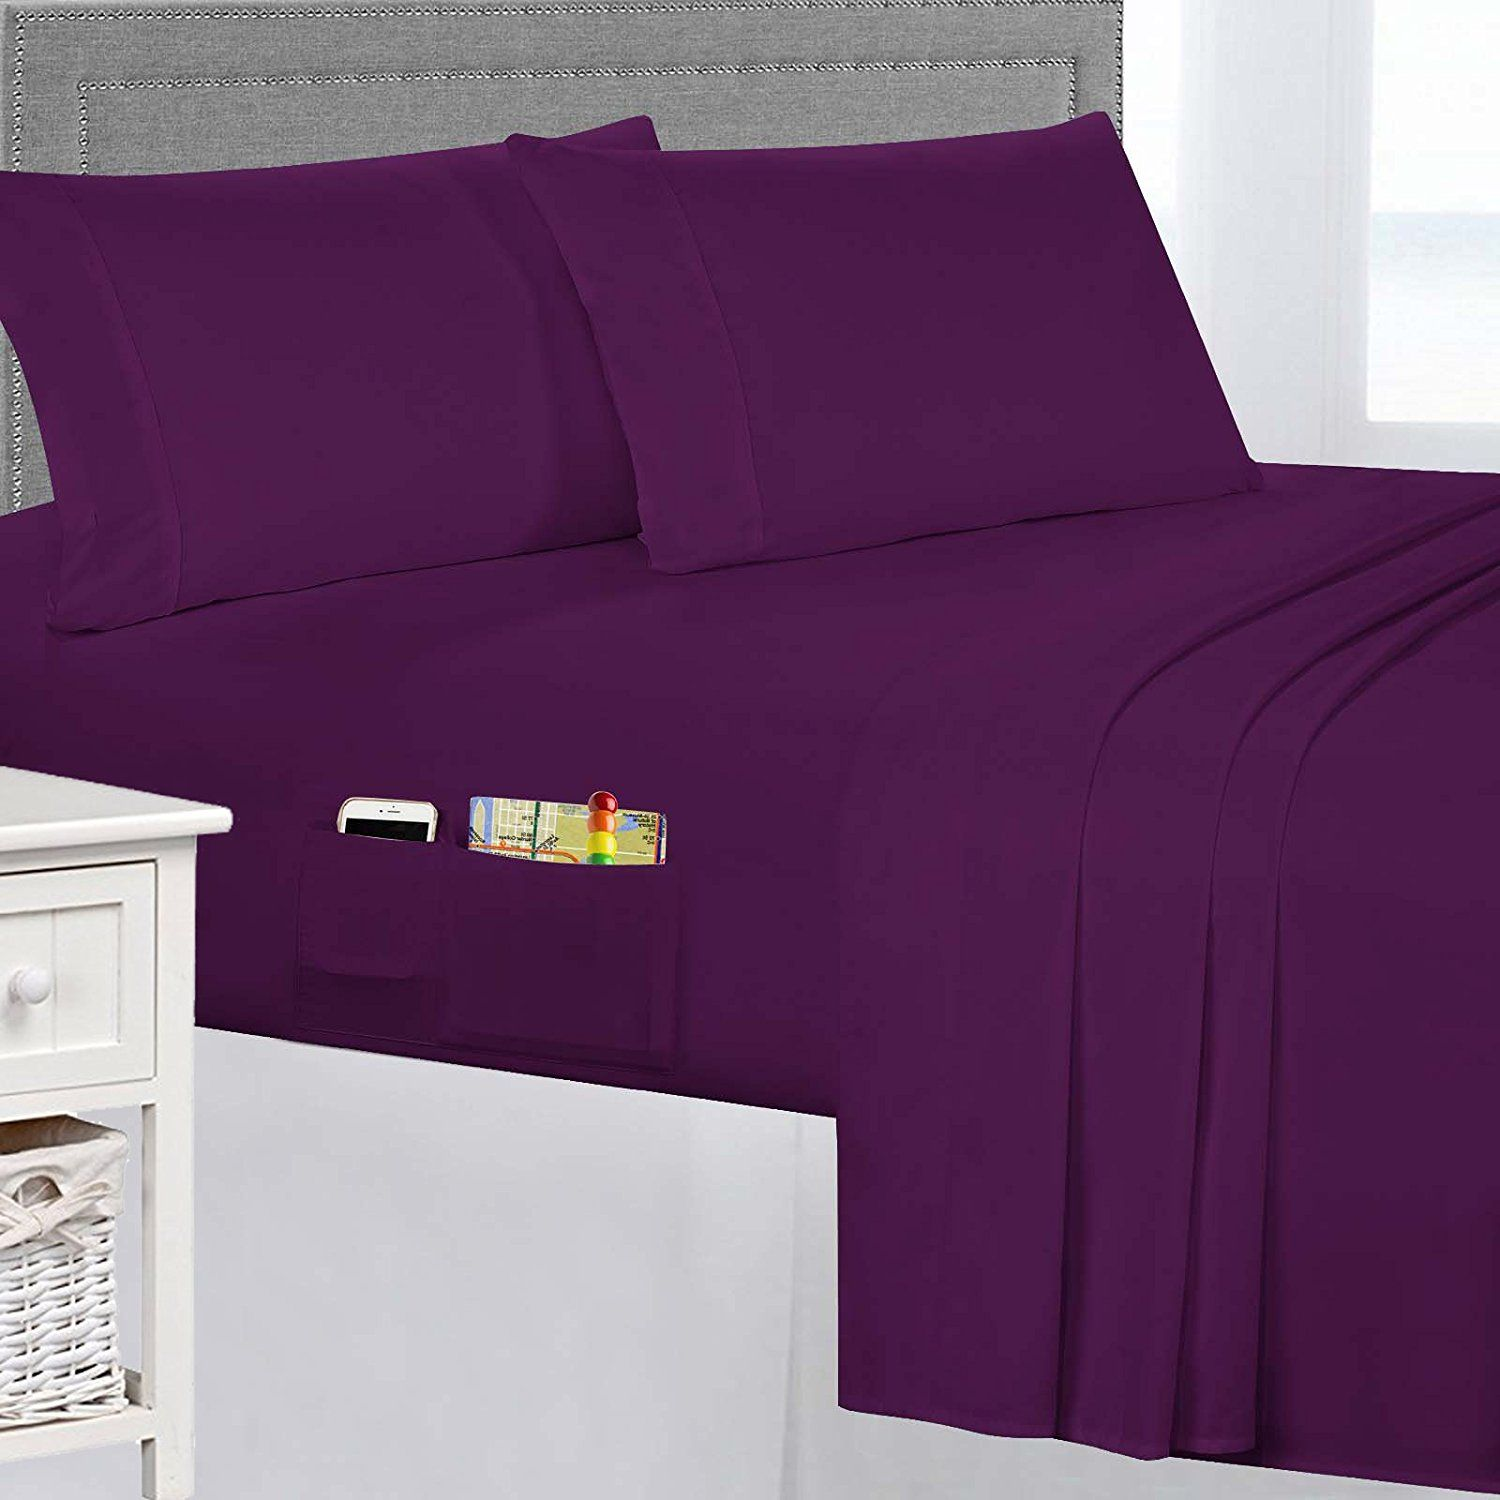 of a furniture in together set comforter beddingss size bedroom sets with conjunction light duvet bag plus eggplant nursery as purple ikea bed mattress well beddings cover full